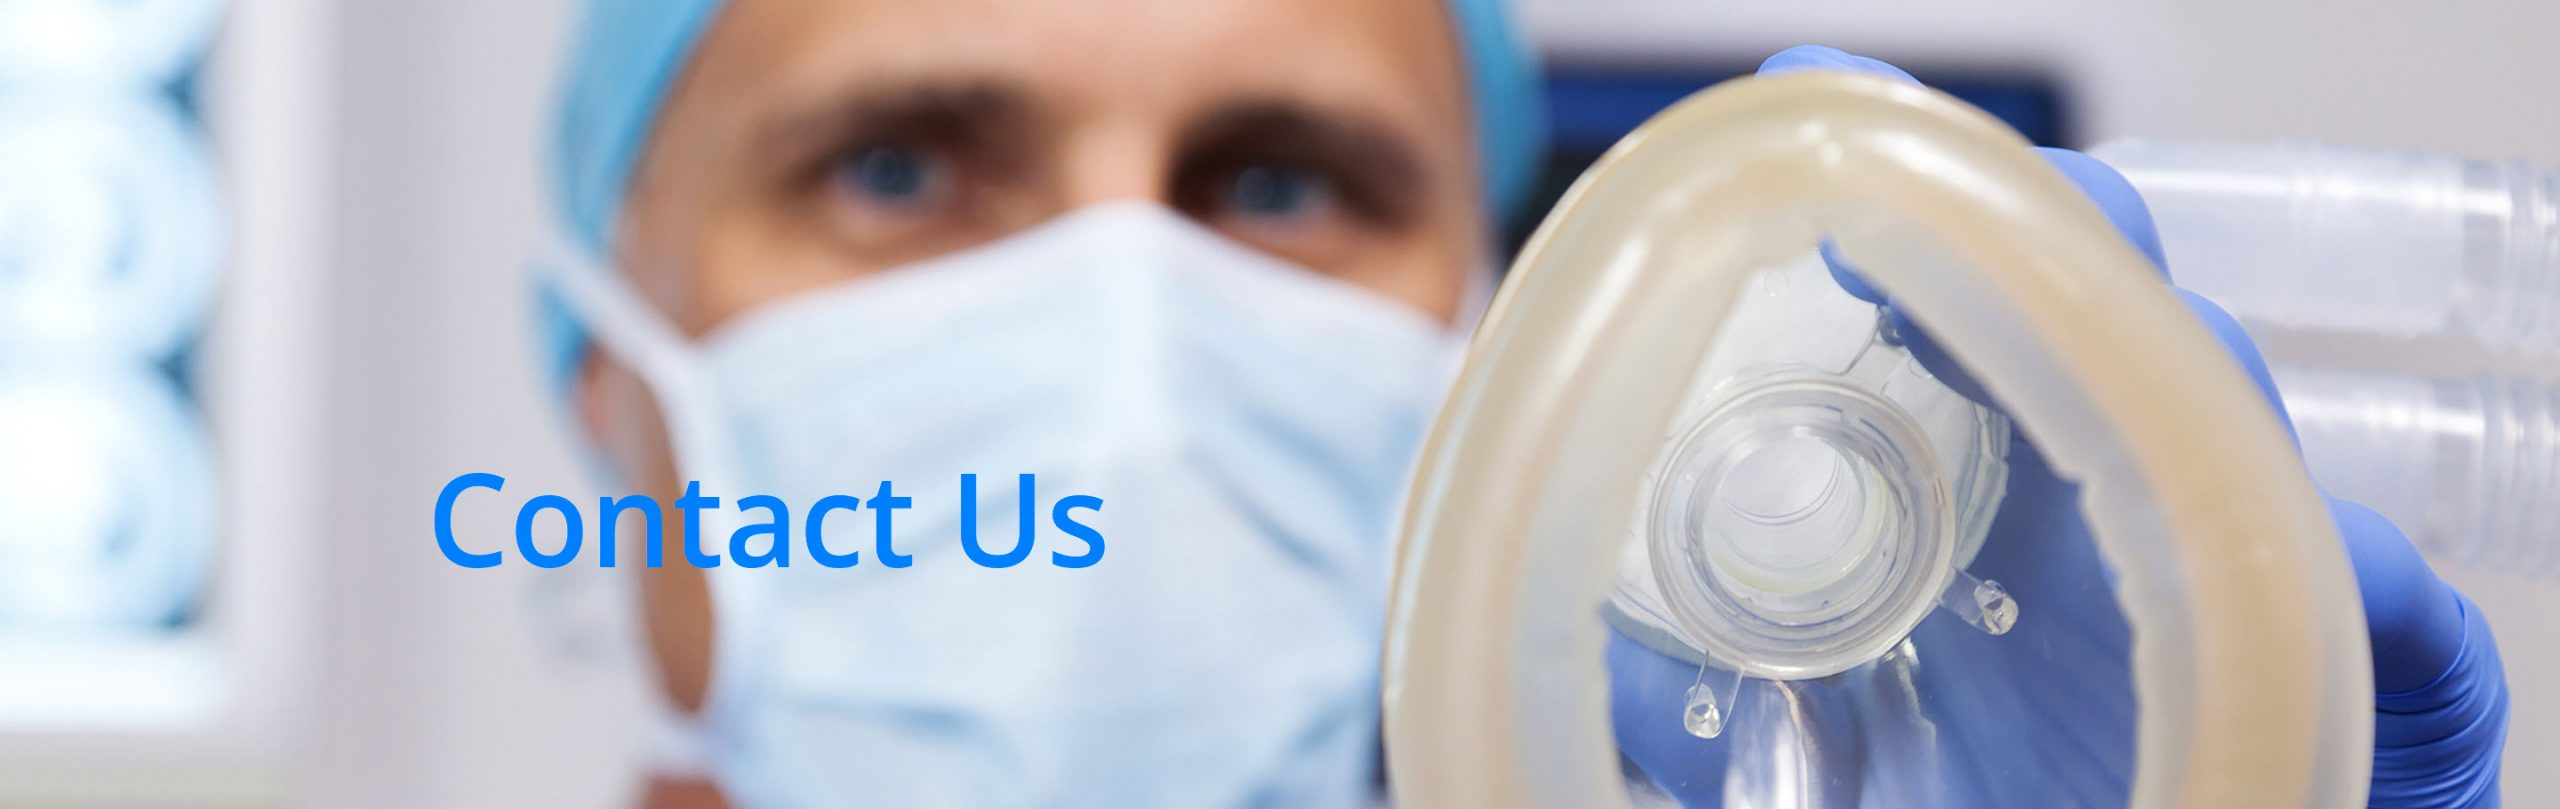 Westmed Inc Contact Us